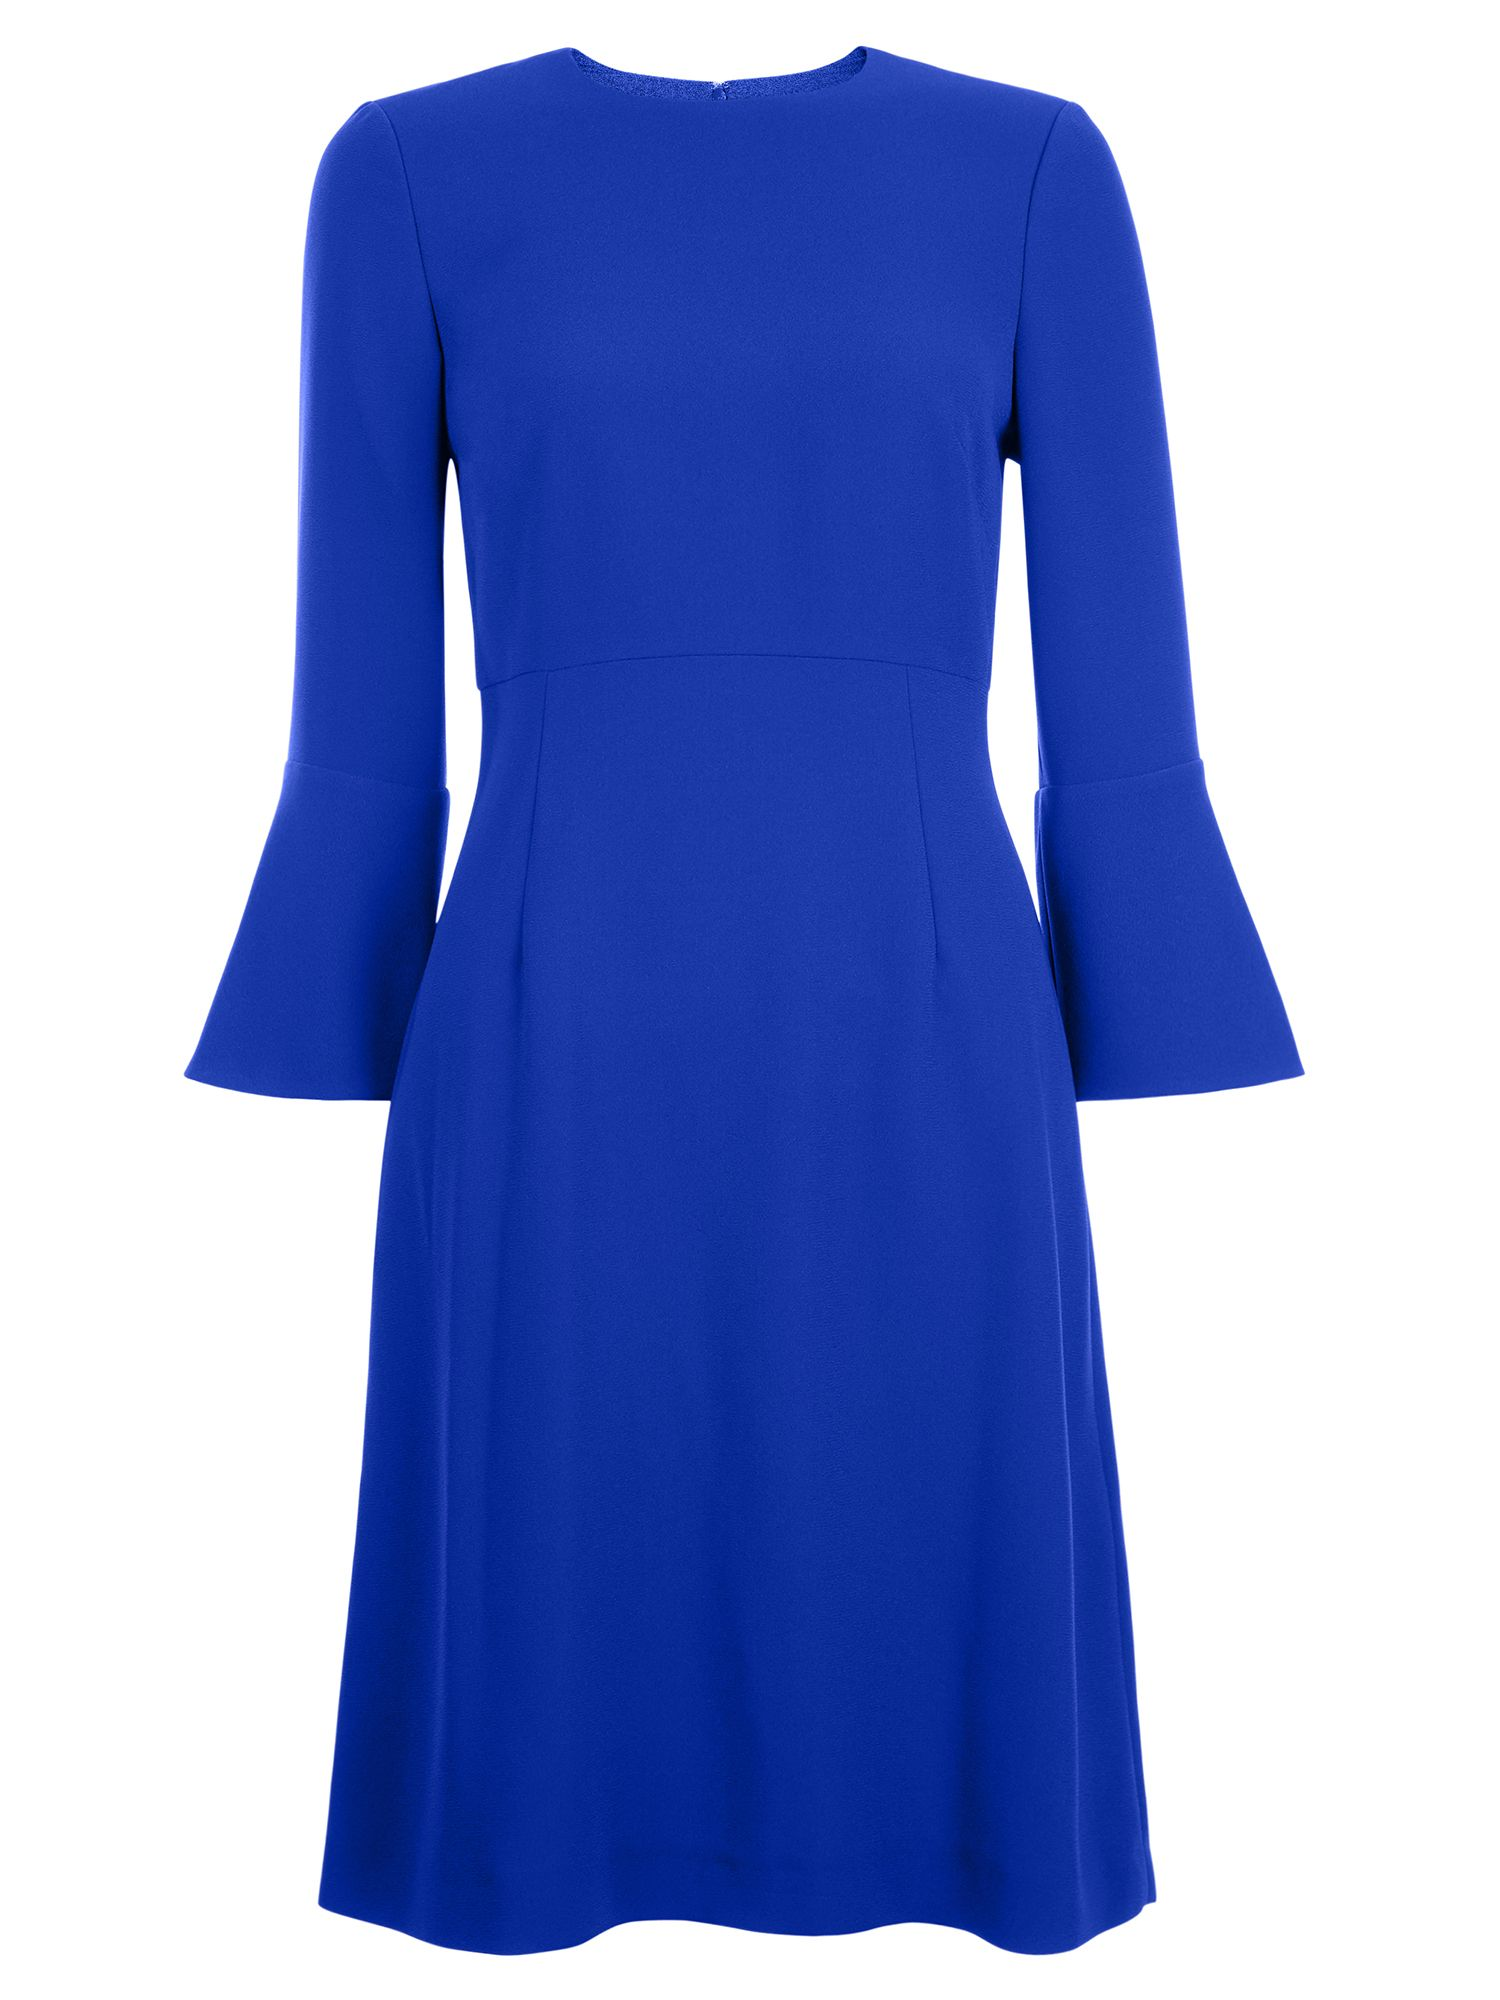 Hobbs Cassie Dress, Blue